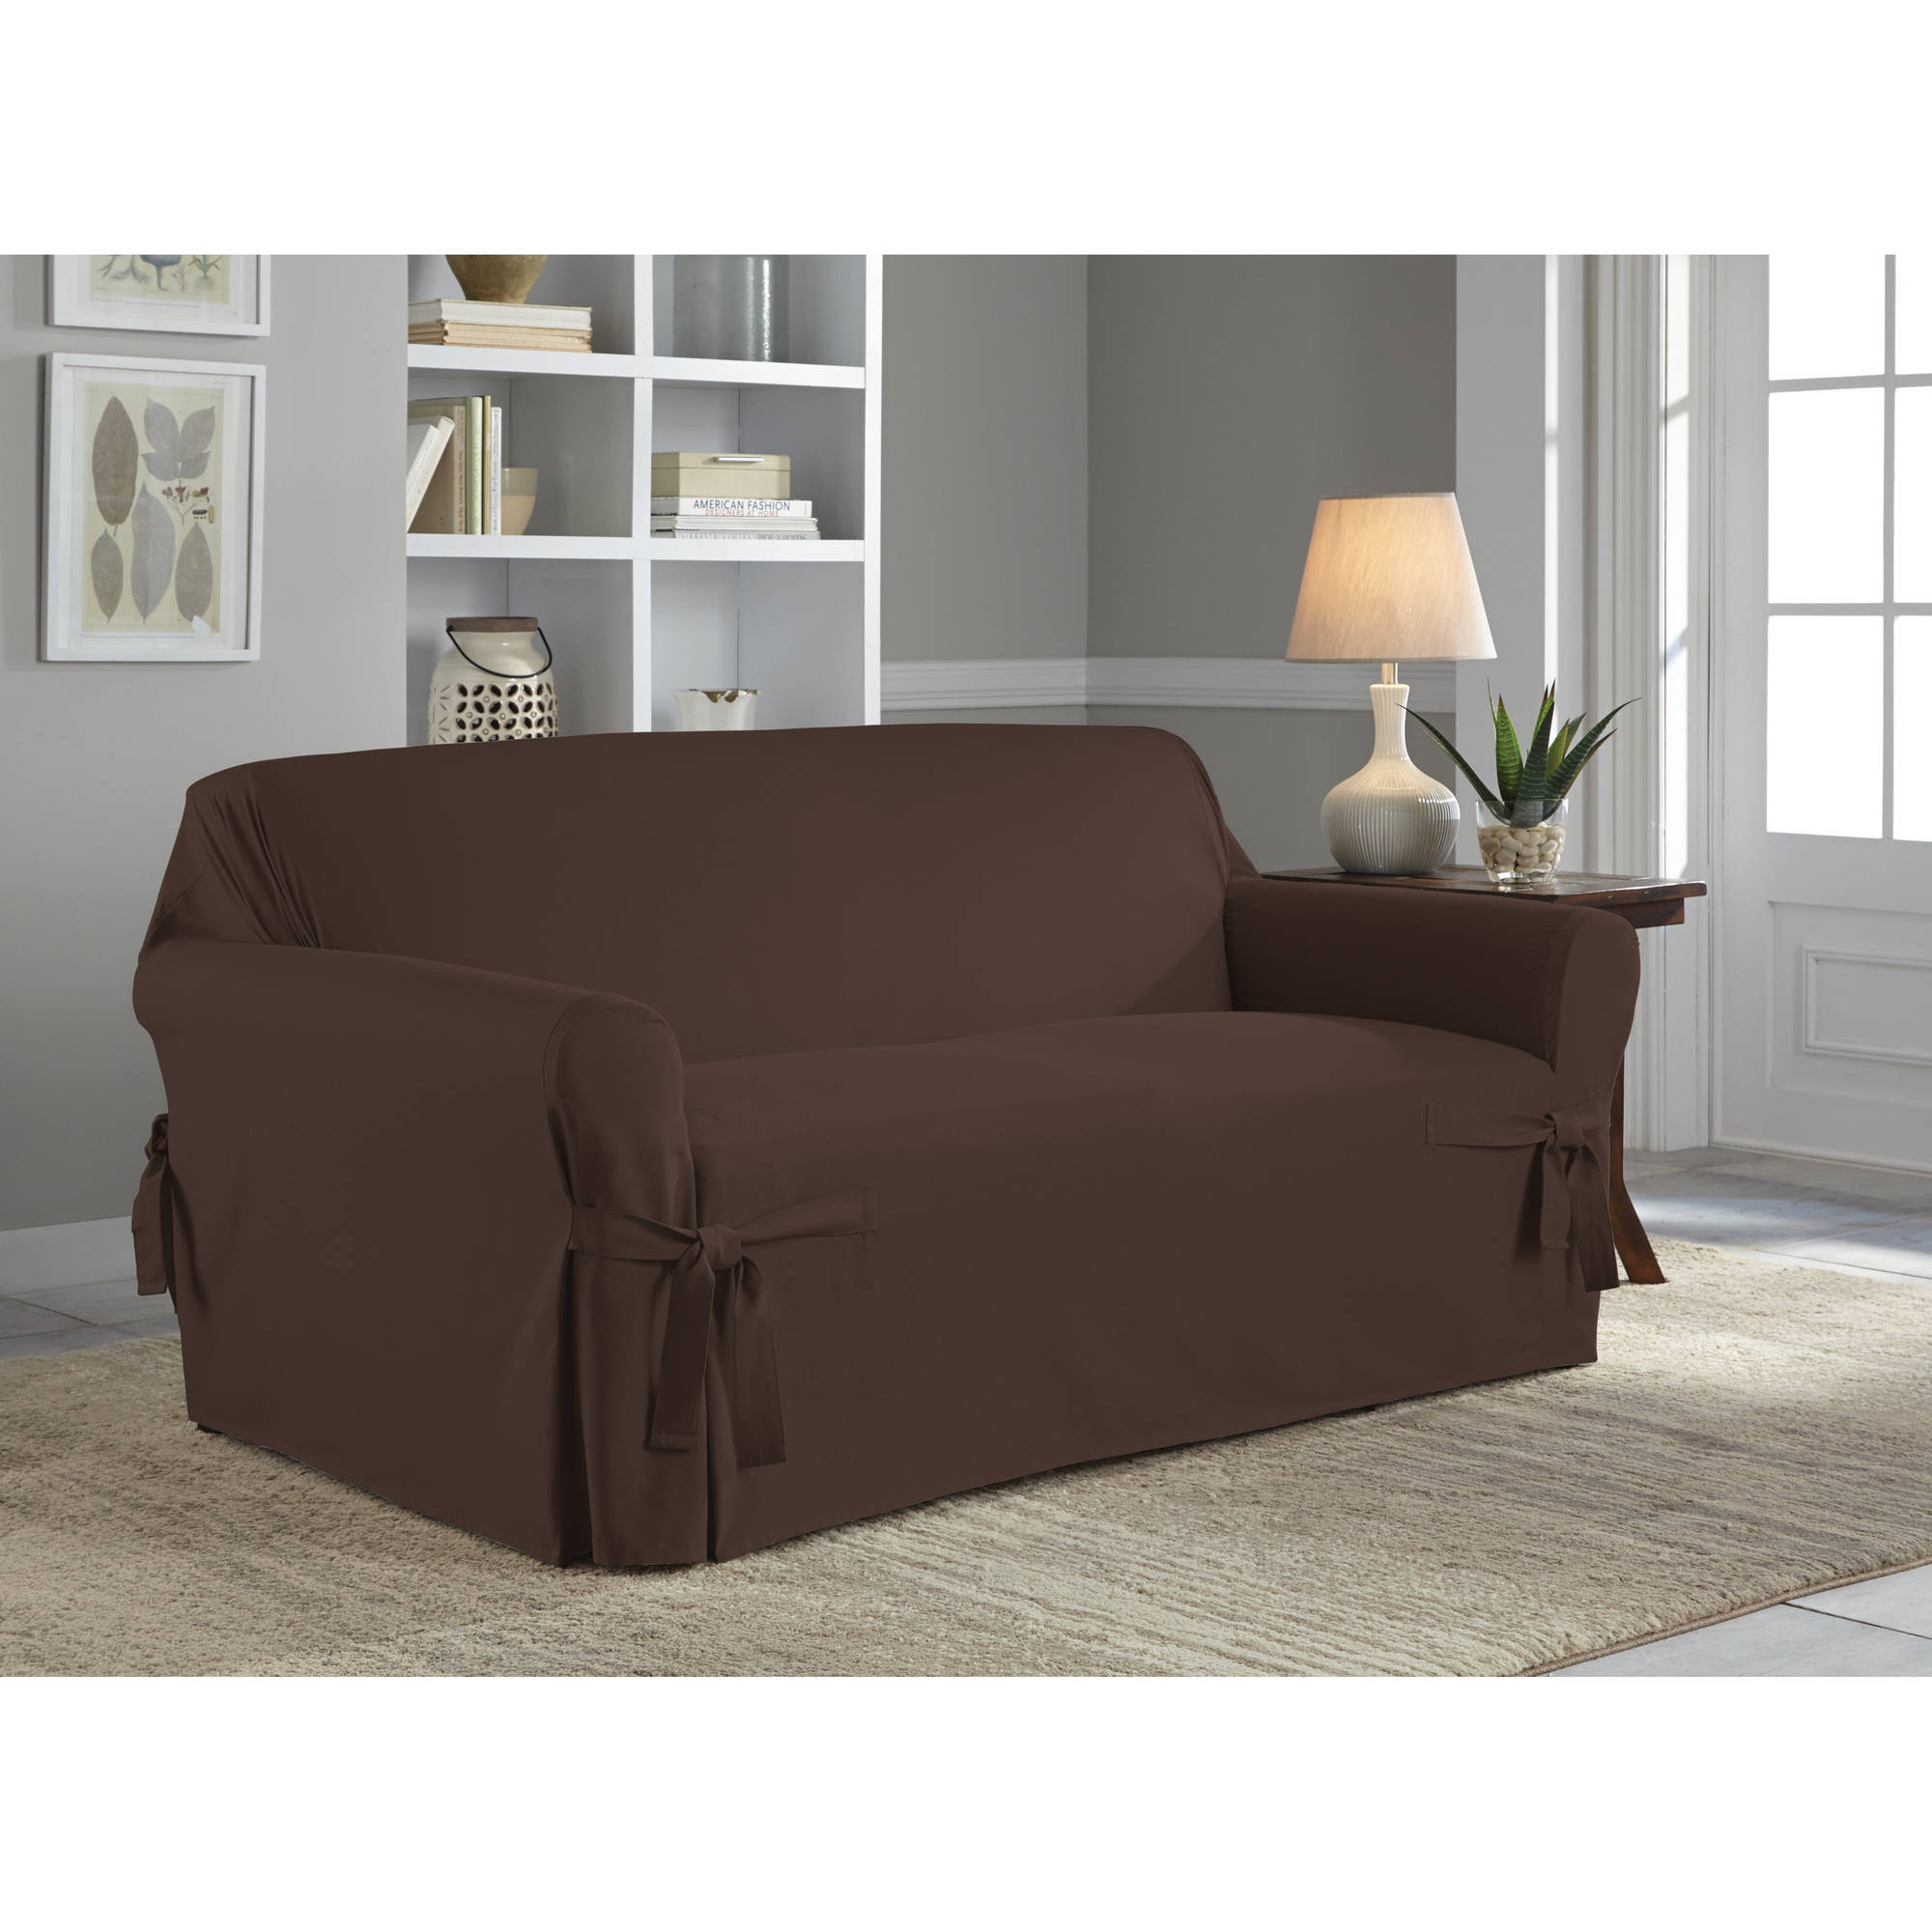 Serta Relaxed Fit Duck Furniture Slipcover Loveseat 1 Piece Box